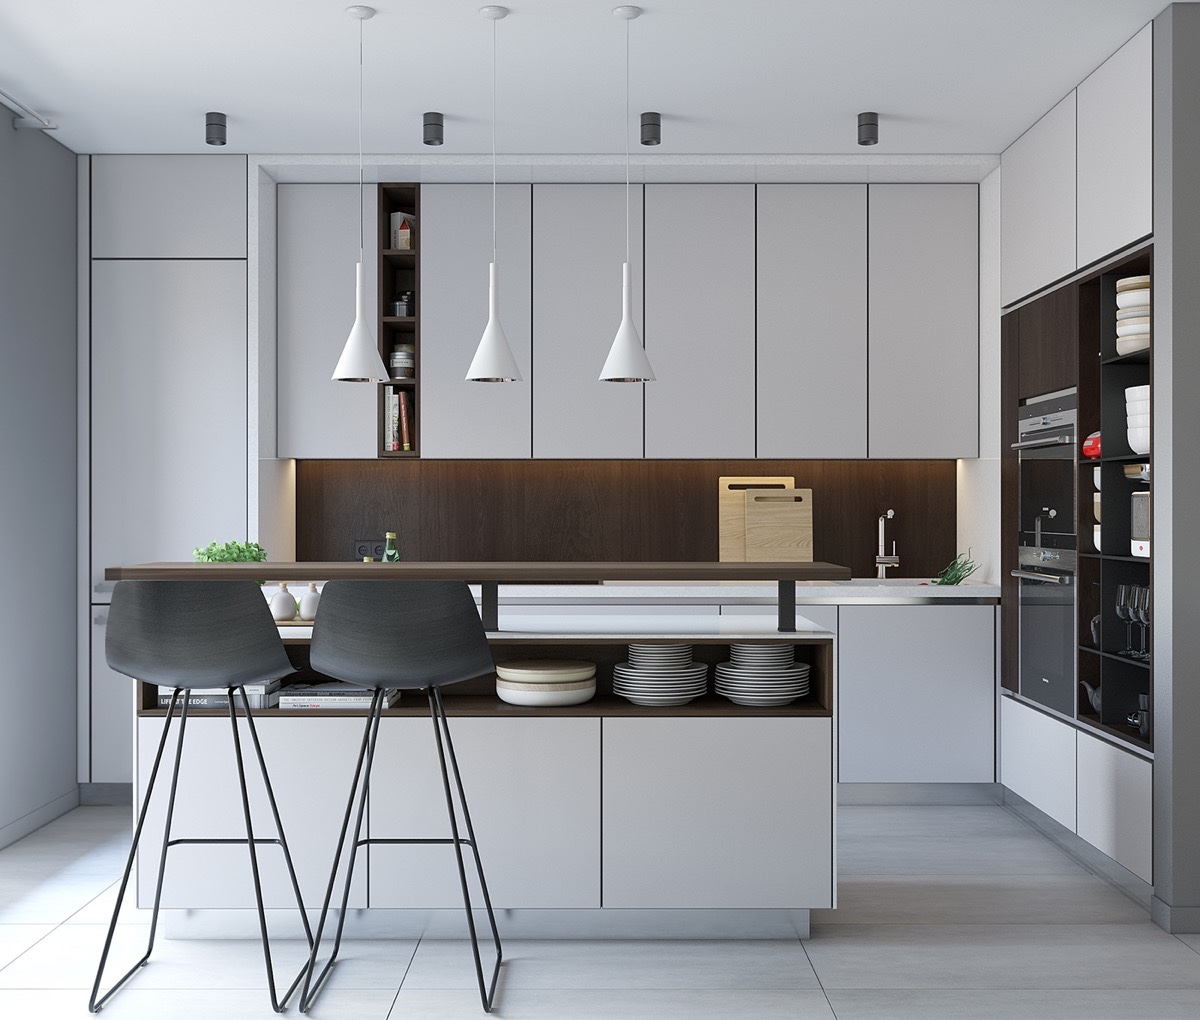 Design Kitchen Set Minimalis Modern 40 Minimalist Kitchens To Get Super Sleek Inspiration